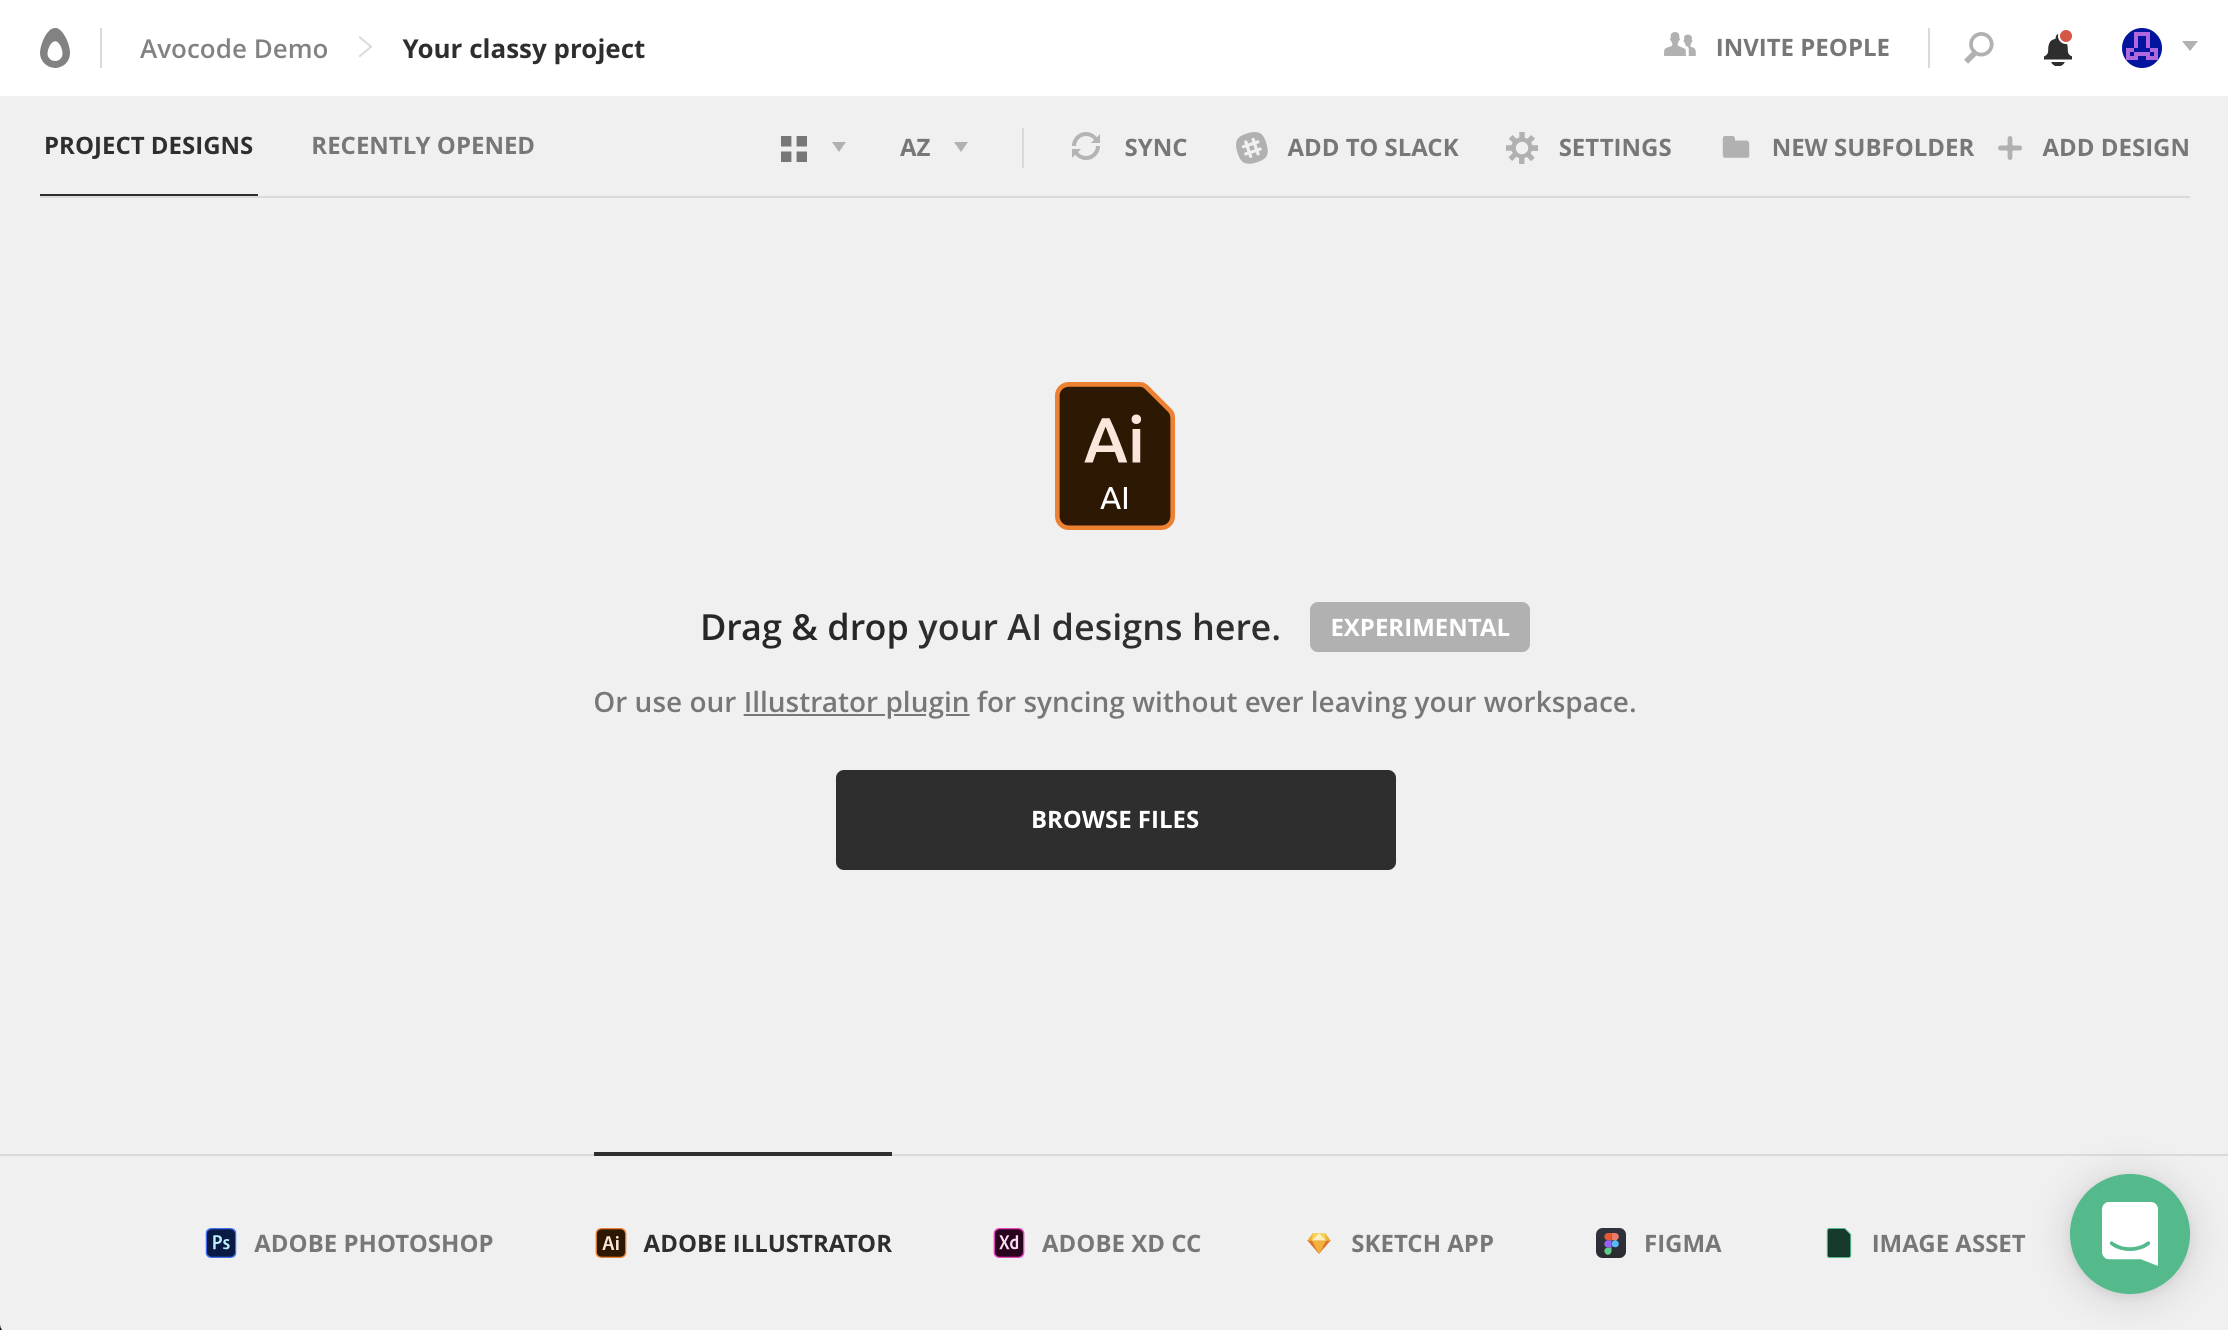 How to open Adobe Illustrator design files online? - Avocode